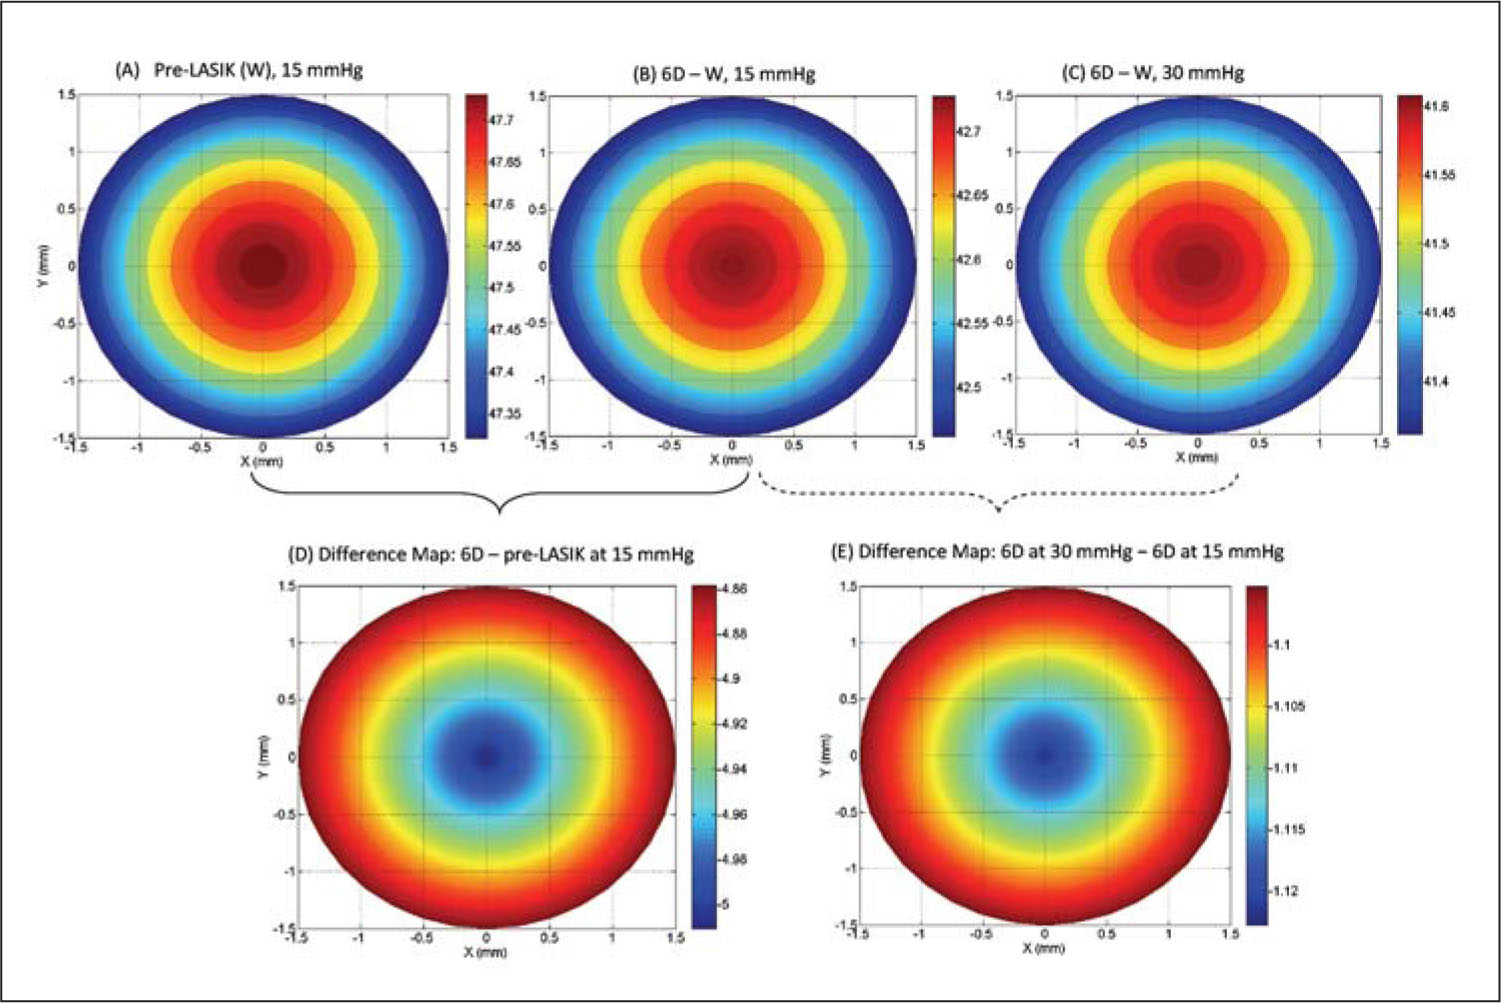 Tangential Power Maps for Preoperative LASIK (W), 6D-W at 15 and 30 mmHg, and Their Difference Map (postoperative–Preoperative LASIK).